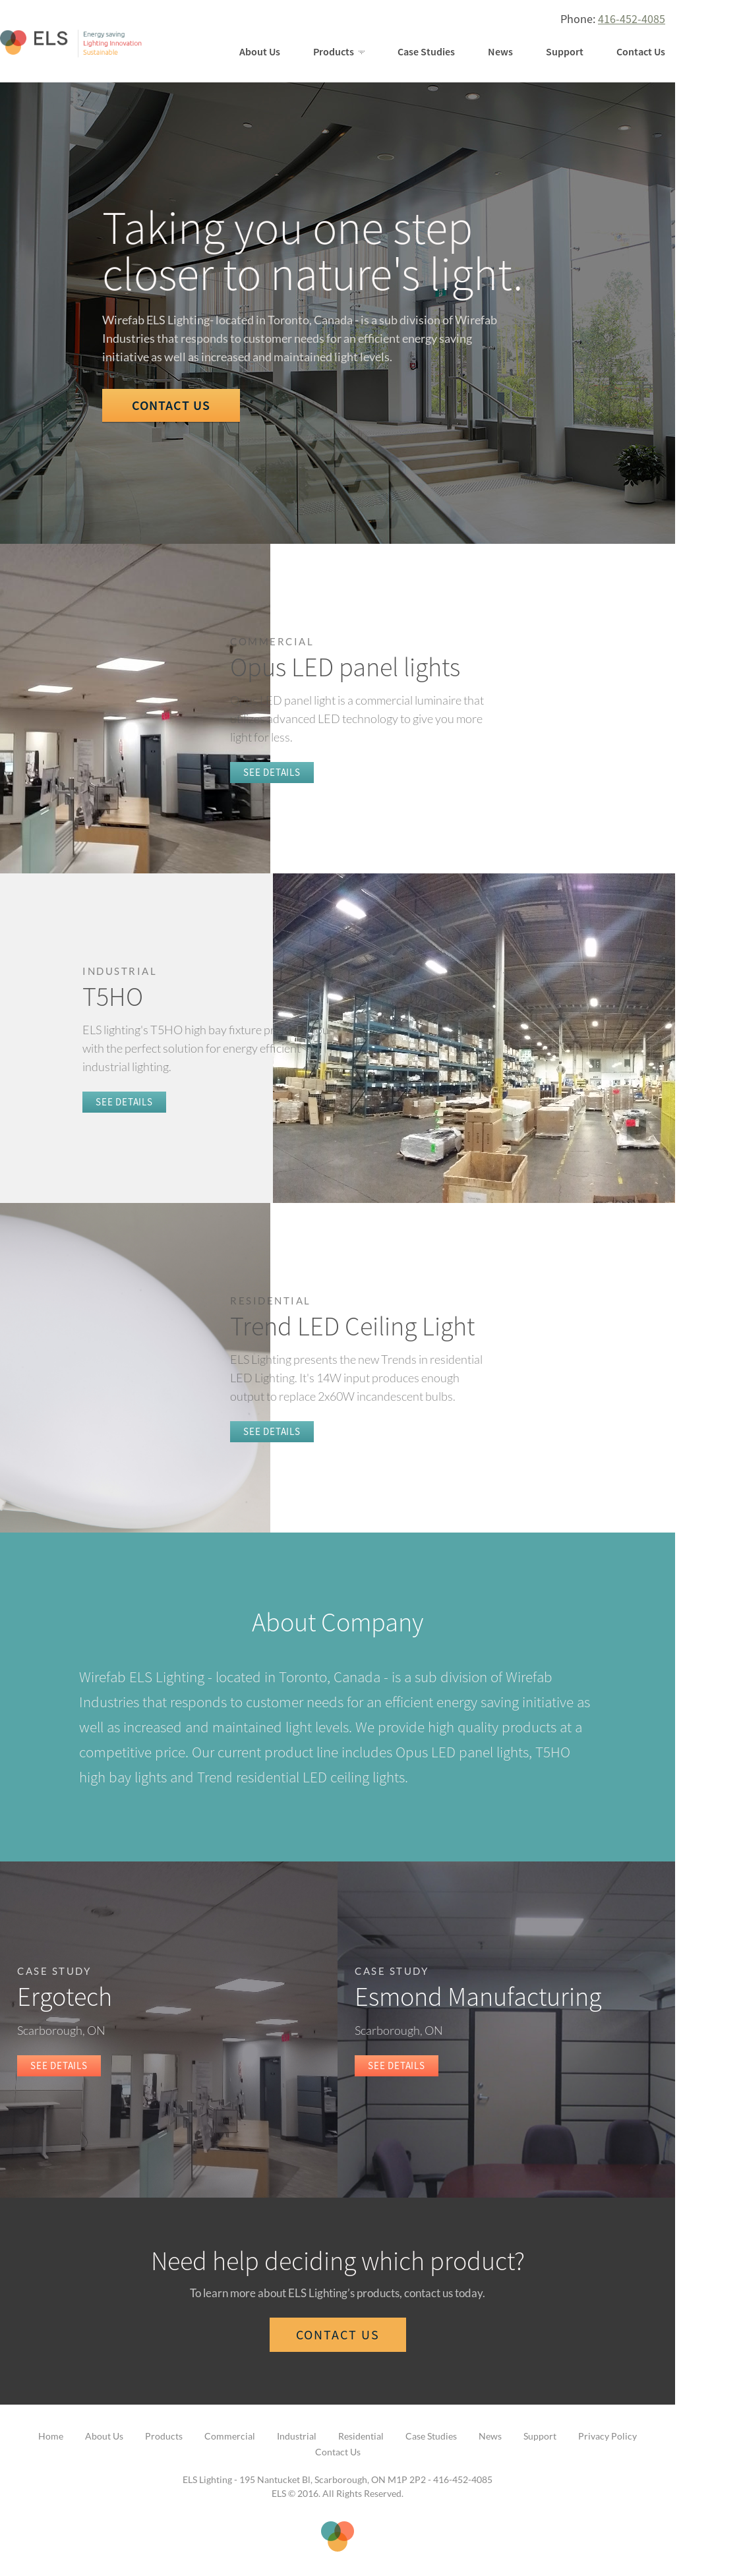 Els Lighting Compeors Revenue And